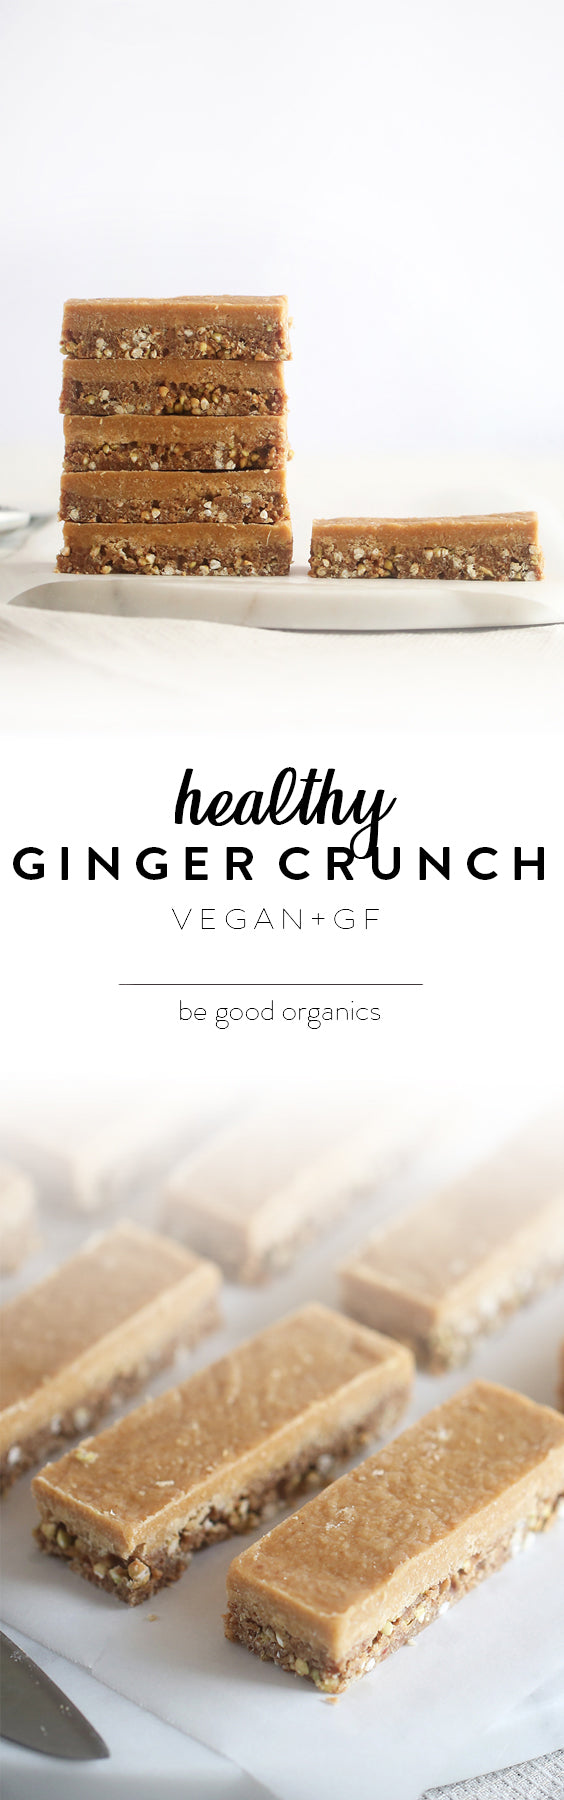 Healthy Ginger Crunch - Be Good Organics